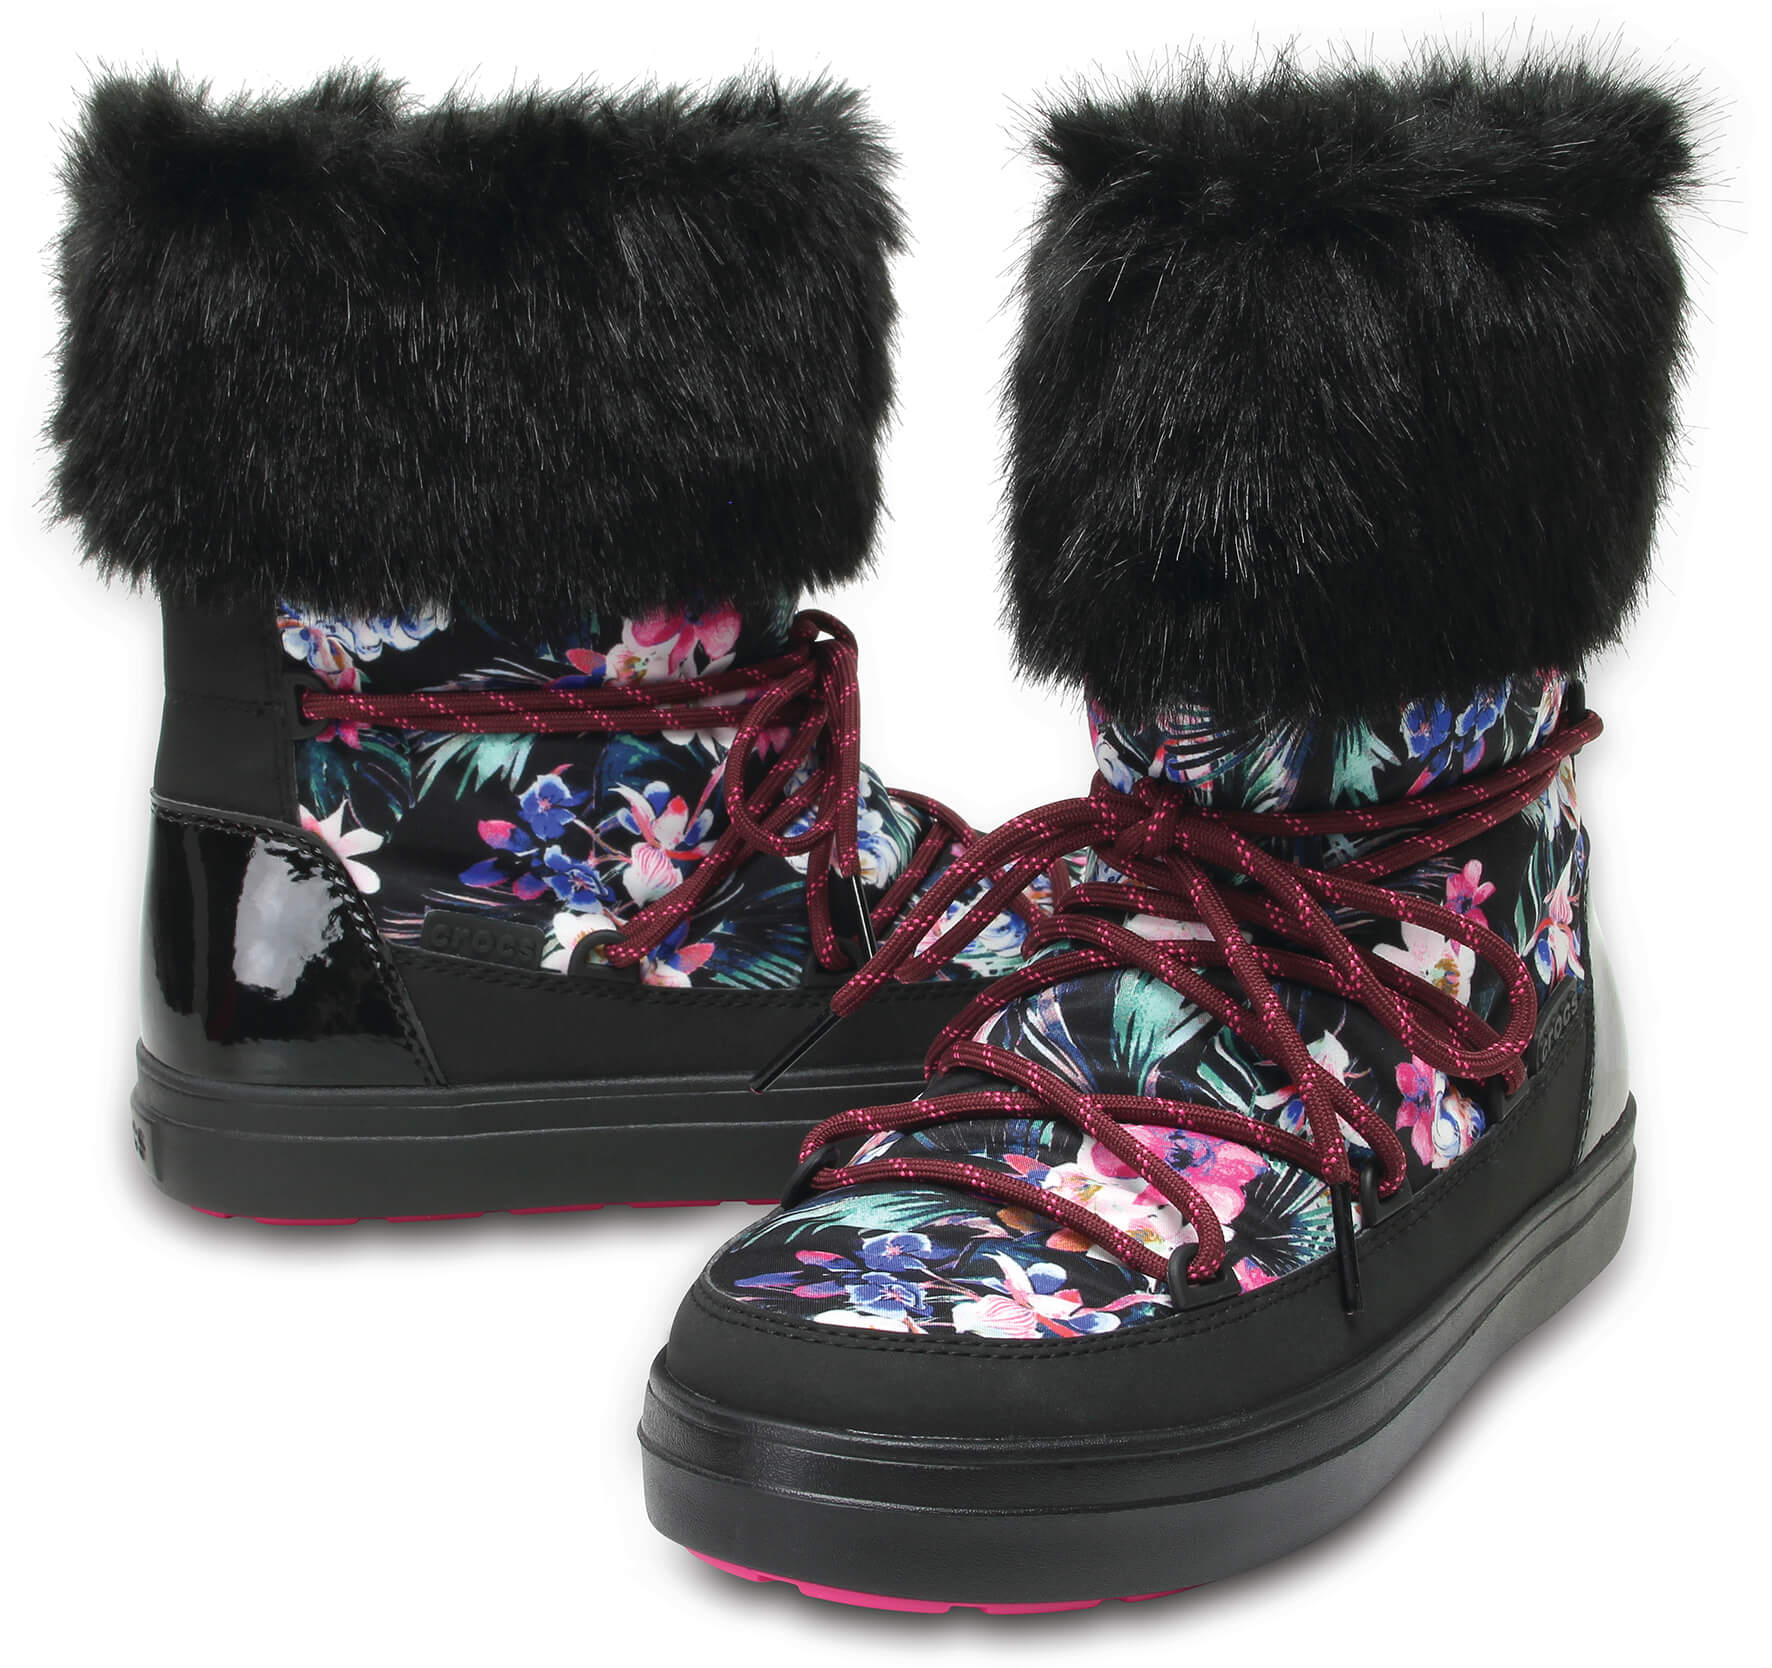 a0dde4bed04 Crocs Dámské sněhule LodgePoint Graphic Lace Boot W Tropical Black  204791-95W